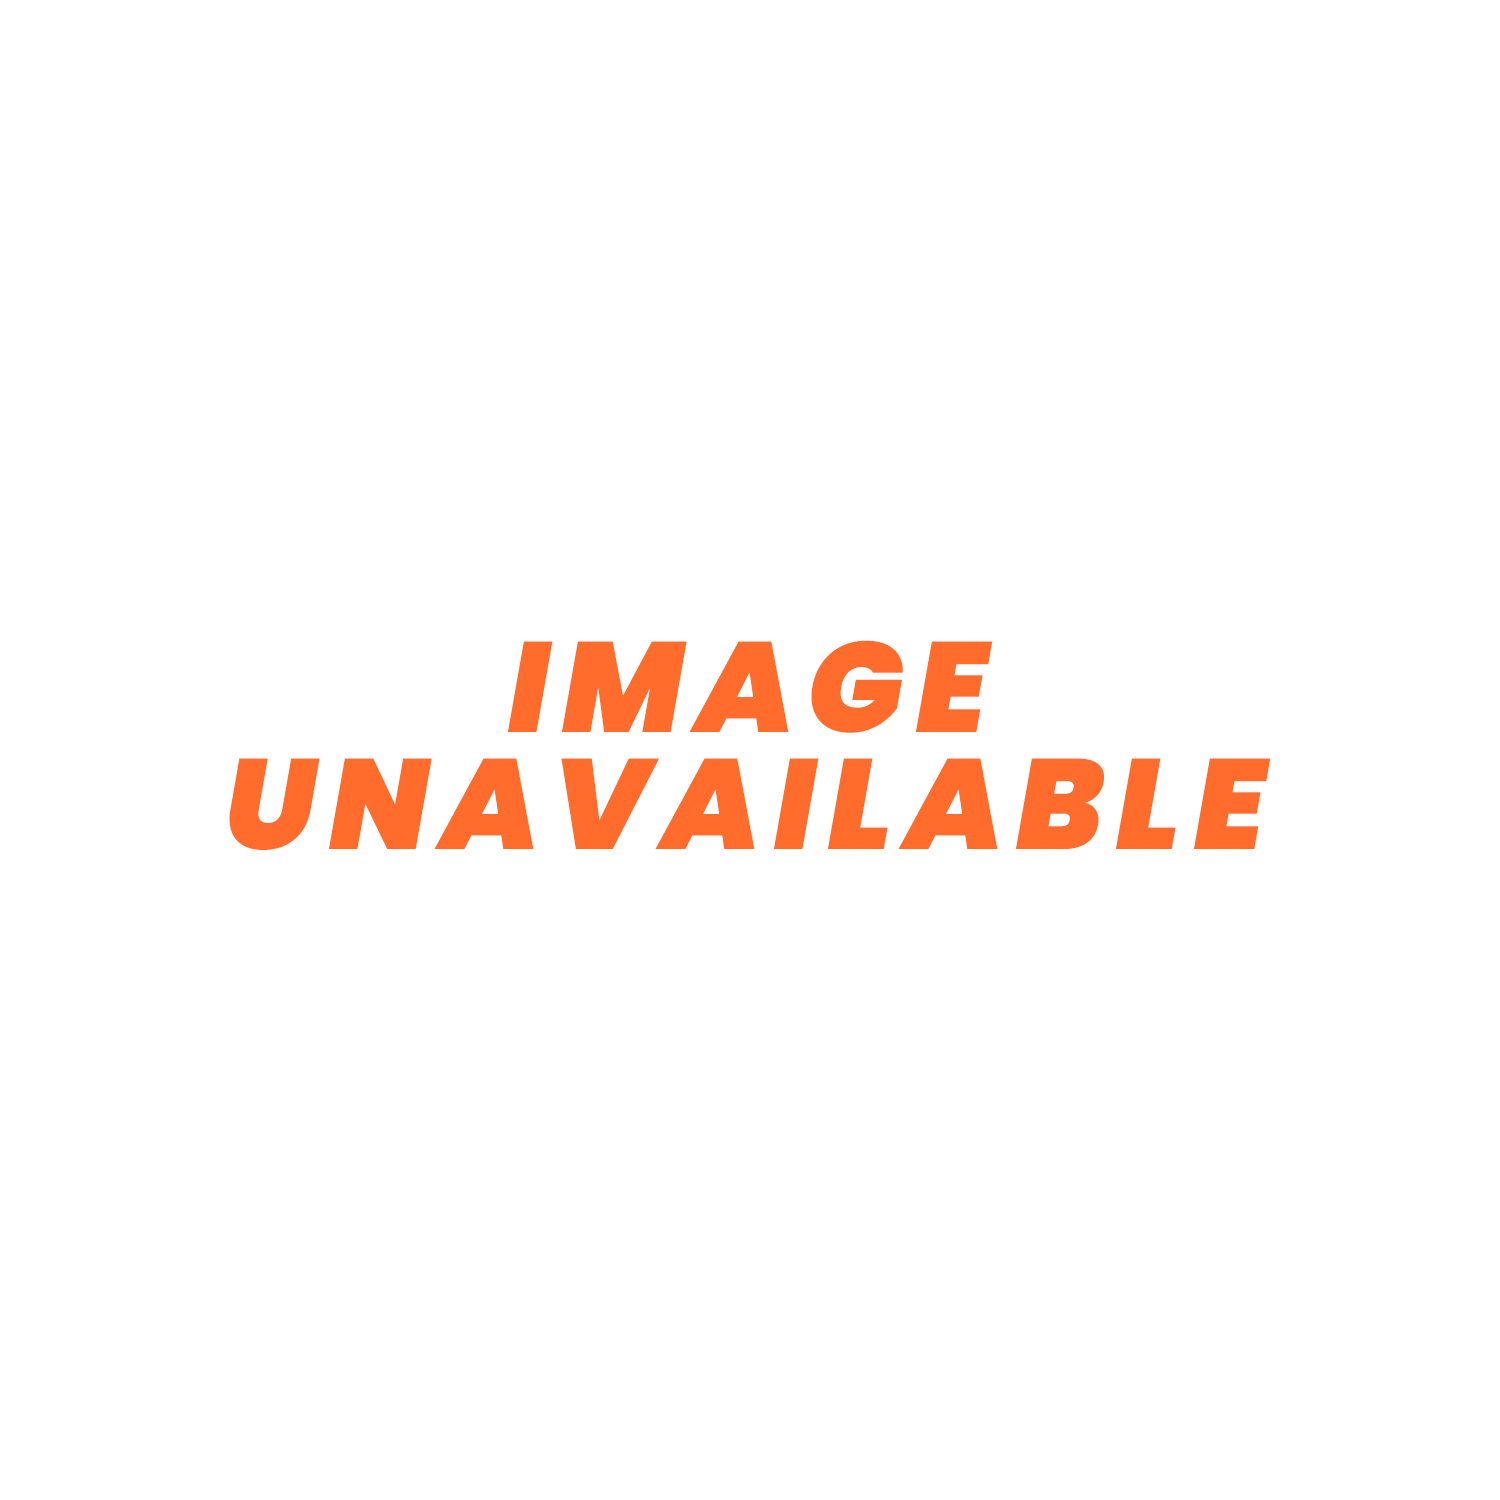 Adhesive Gold Reflective Heat Barrier Sheet 12 x 24""